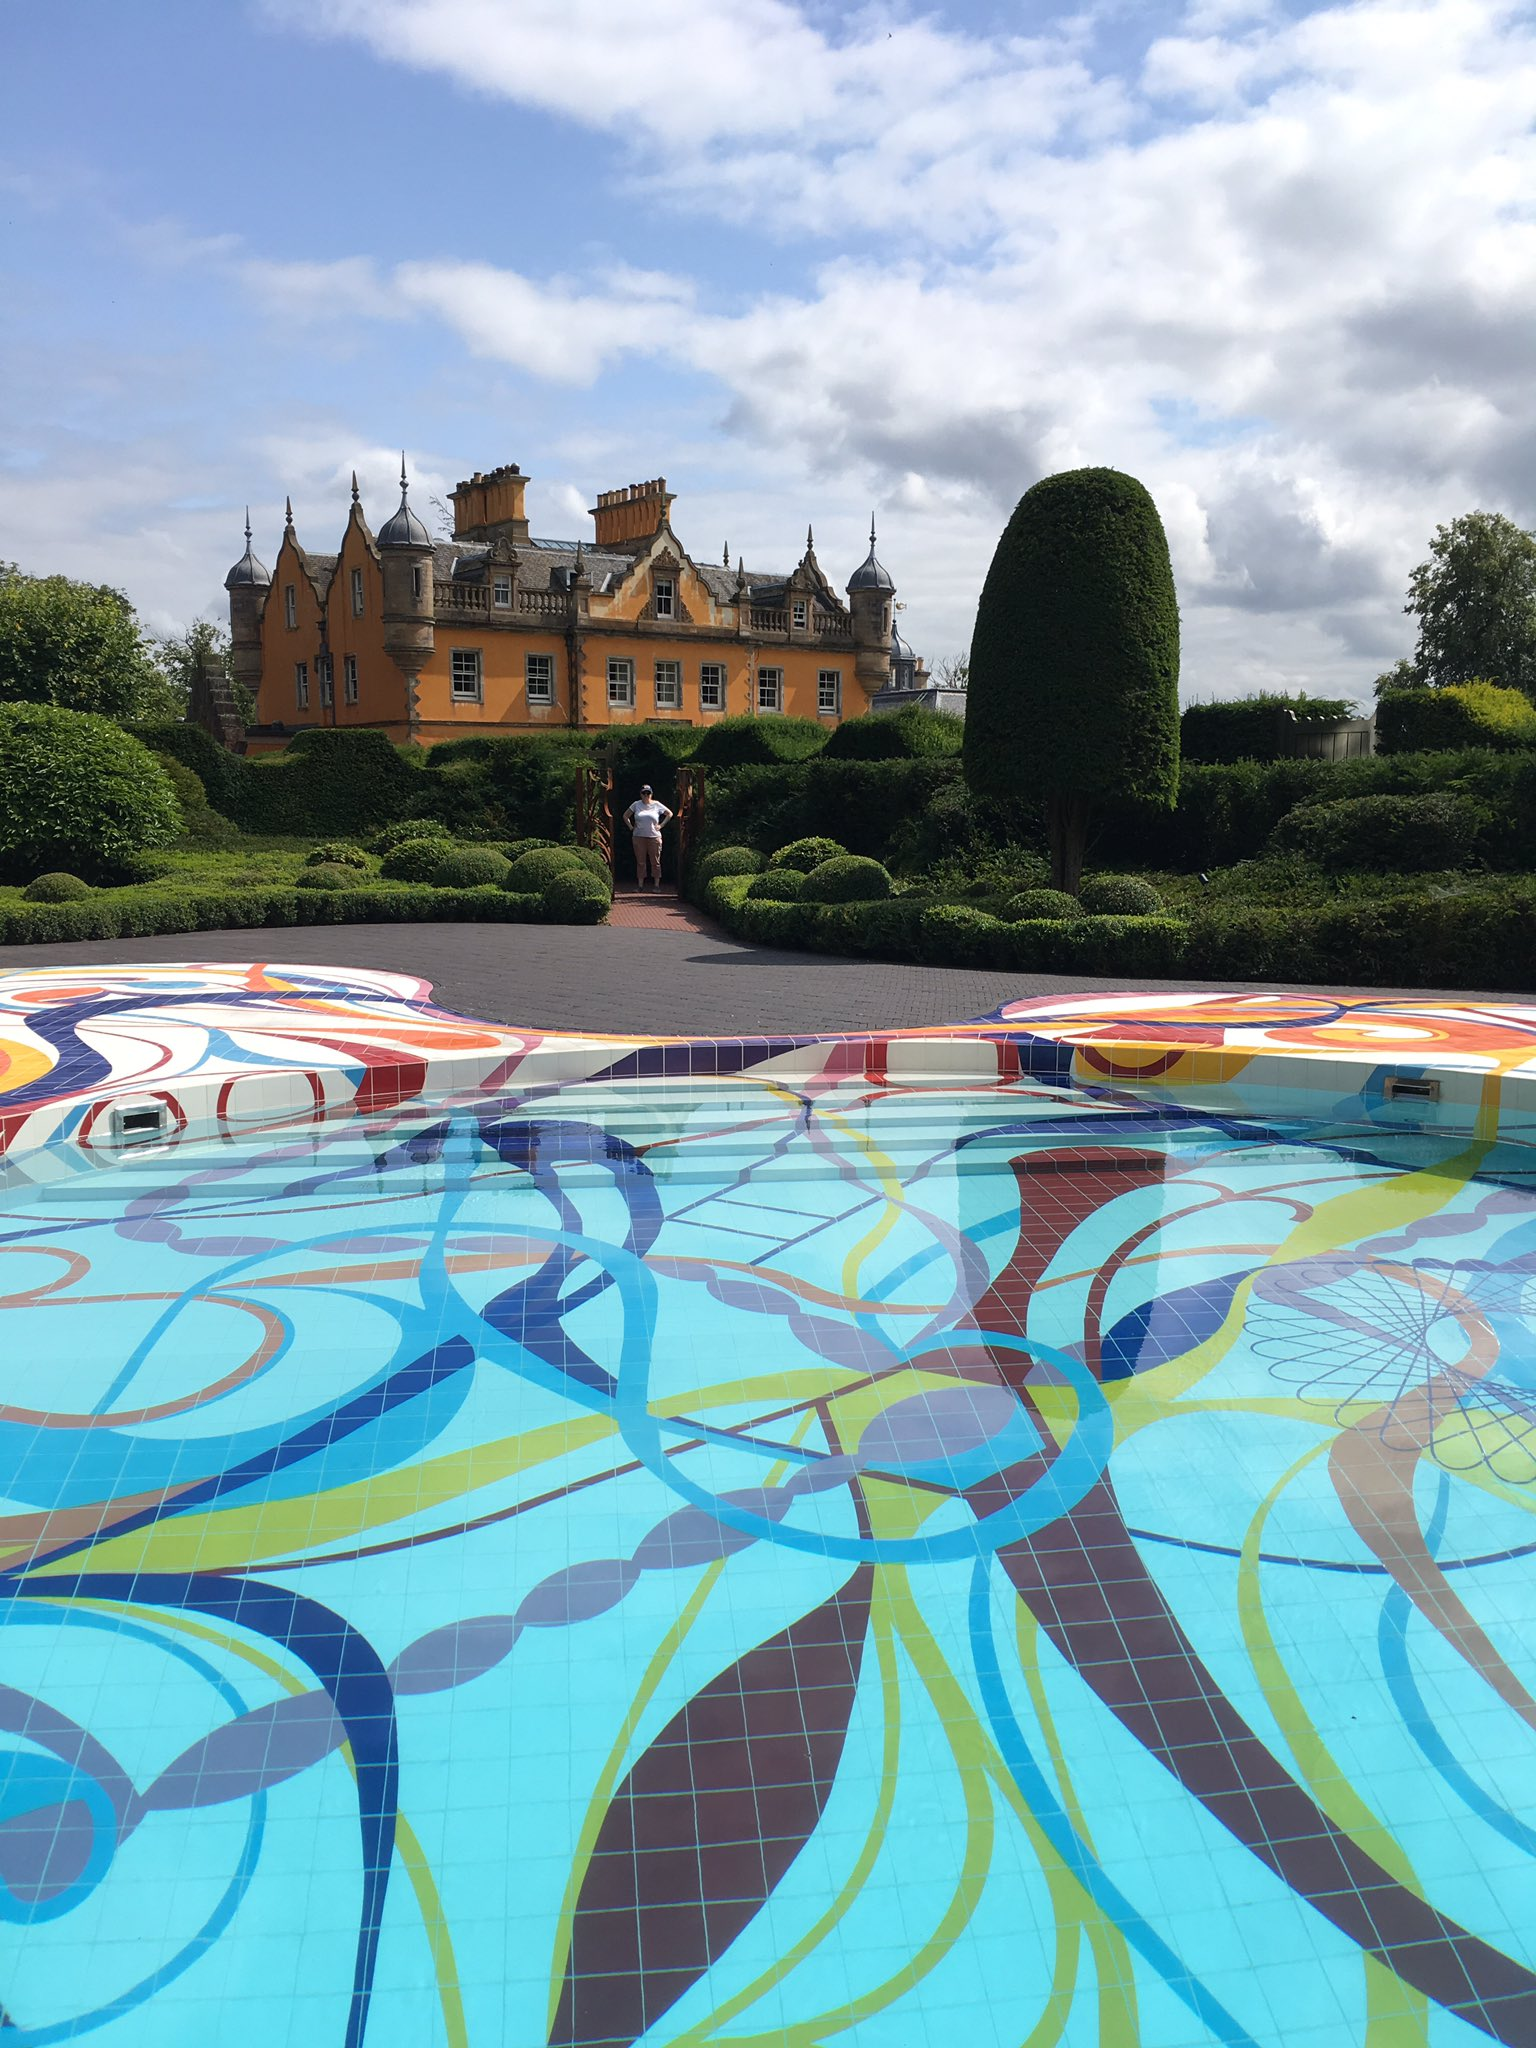 Another fantastic trip to @jupiterartland today. The new pool by #joanavasconcelos is stunning. https://t.co/TRJ0s6P14B